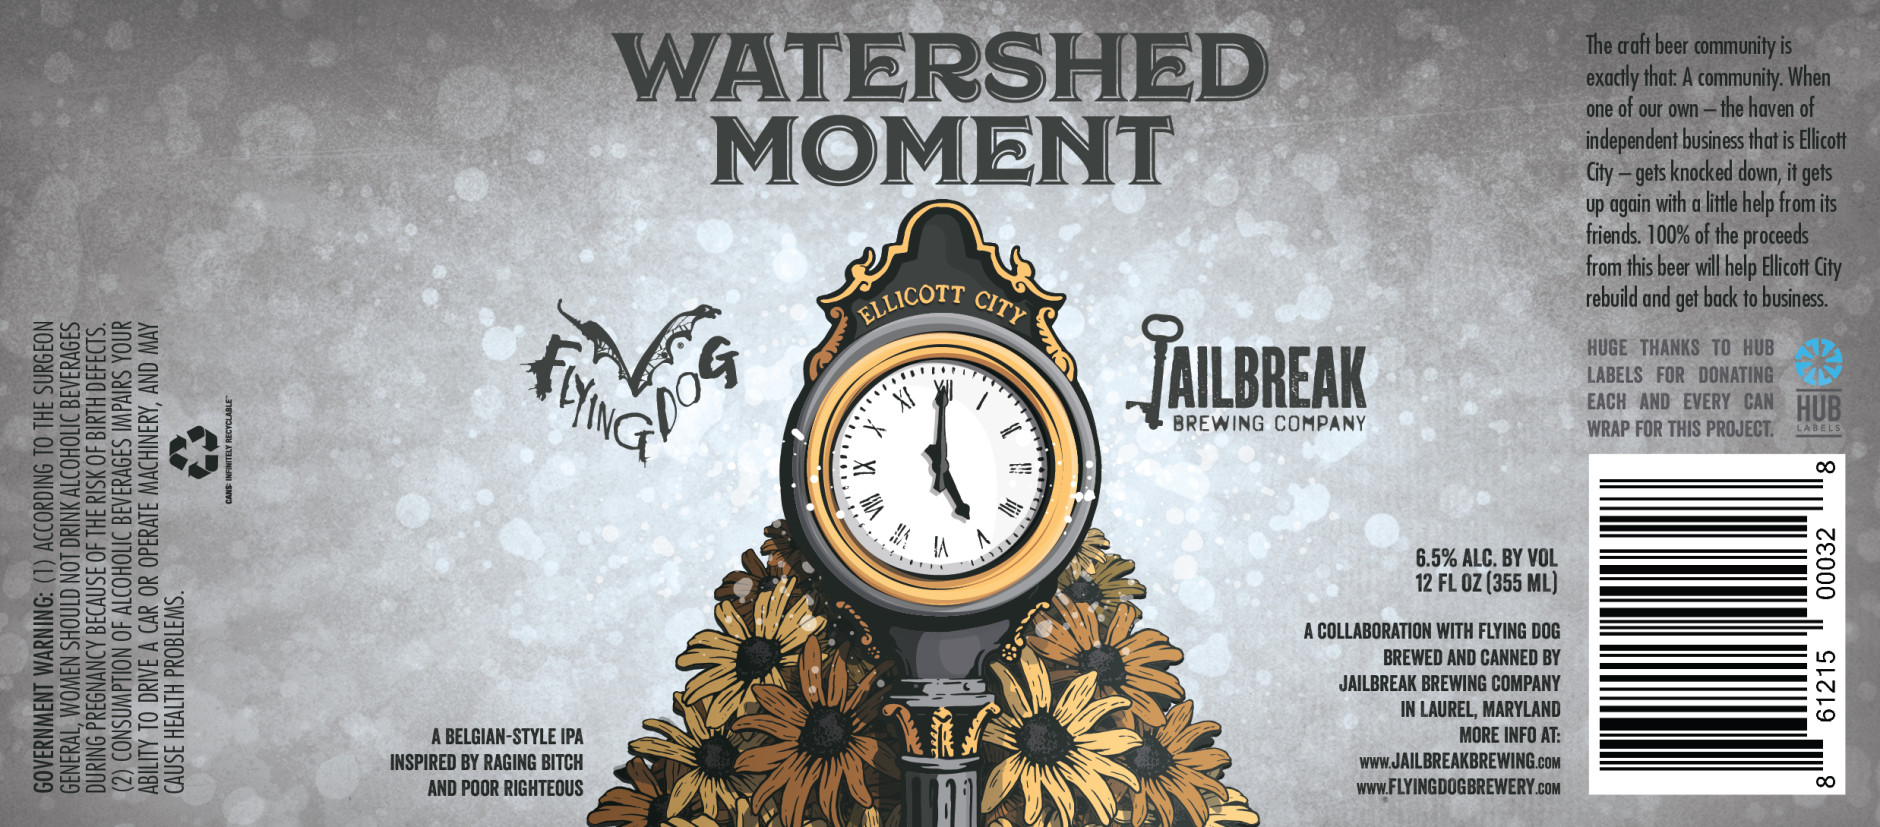 The two breweries say Watershed Moment is a hybrid of Jailbreak's Poor Righteous IPA and Flying Dog's Raging Bitch Belgian-Style IPA. (Courtesy Flying Dog Brewery)